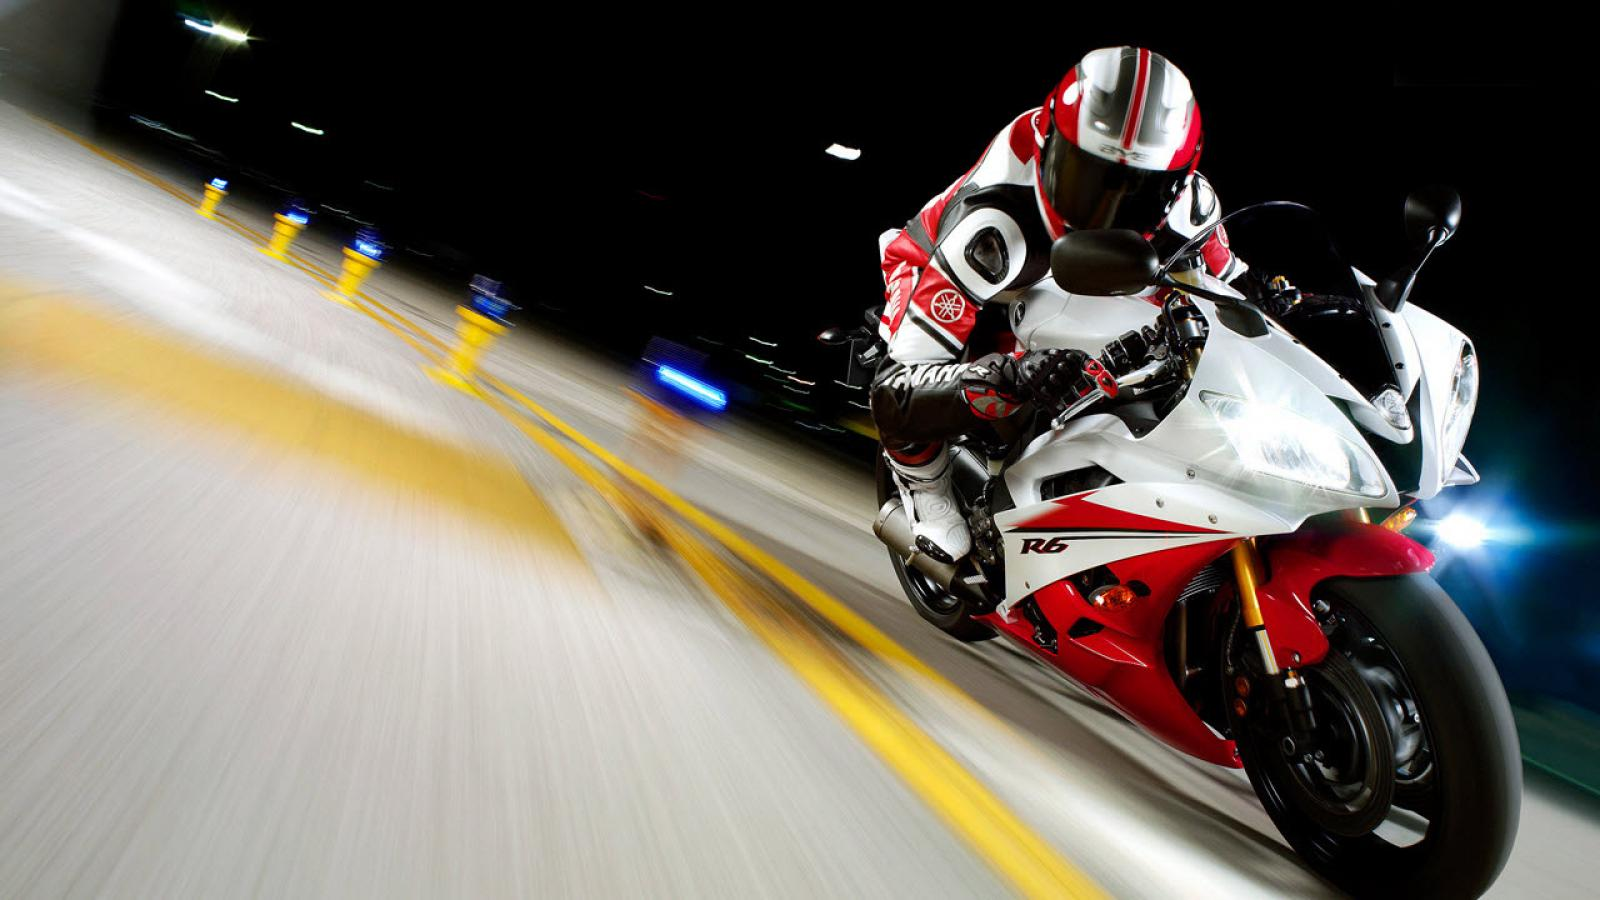 Honda Motorcycle Wallpaper 1